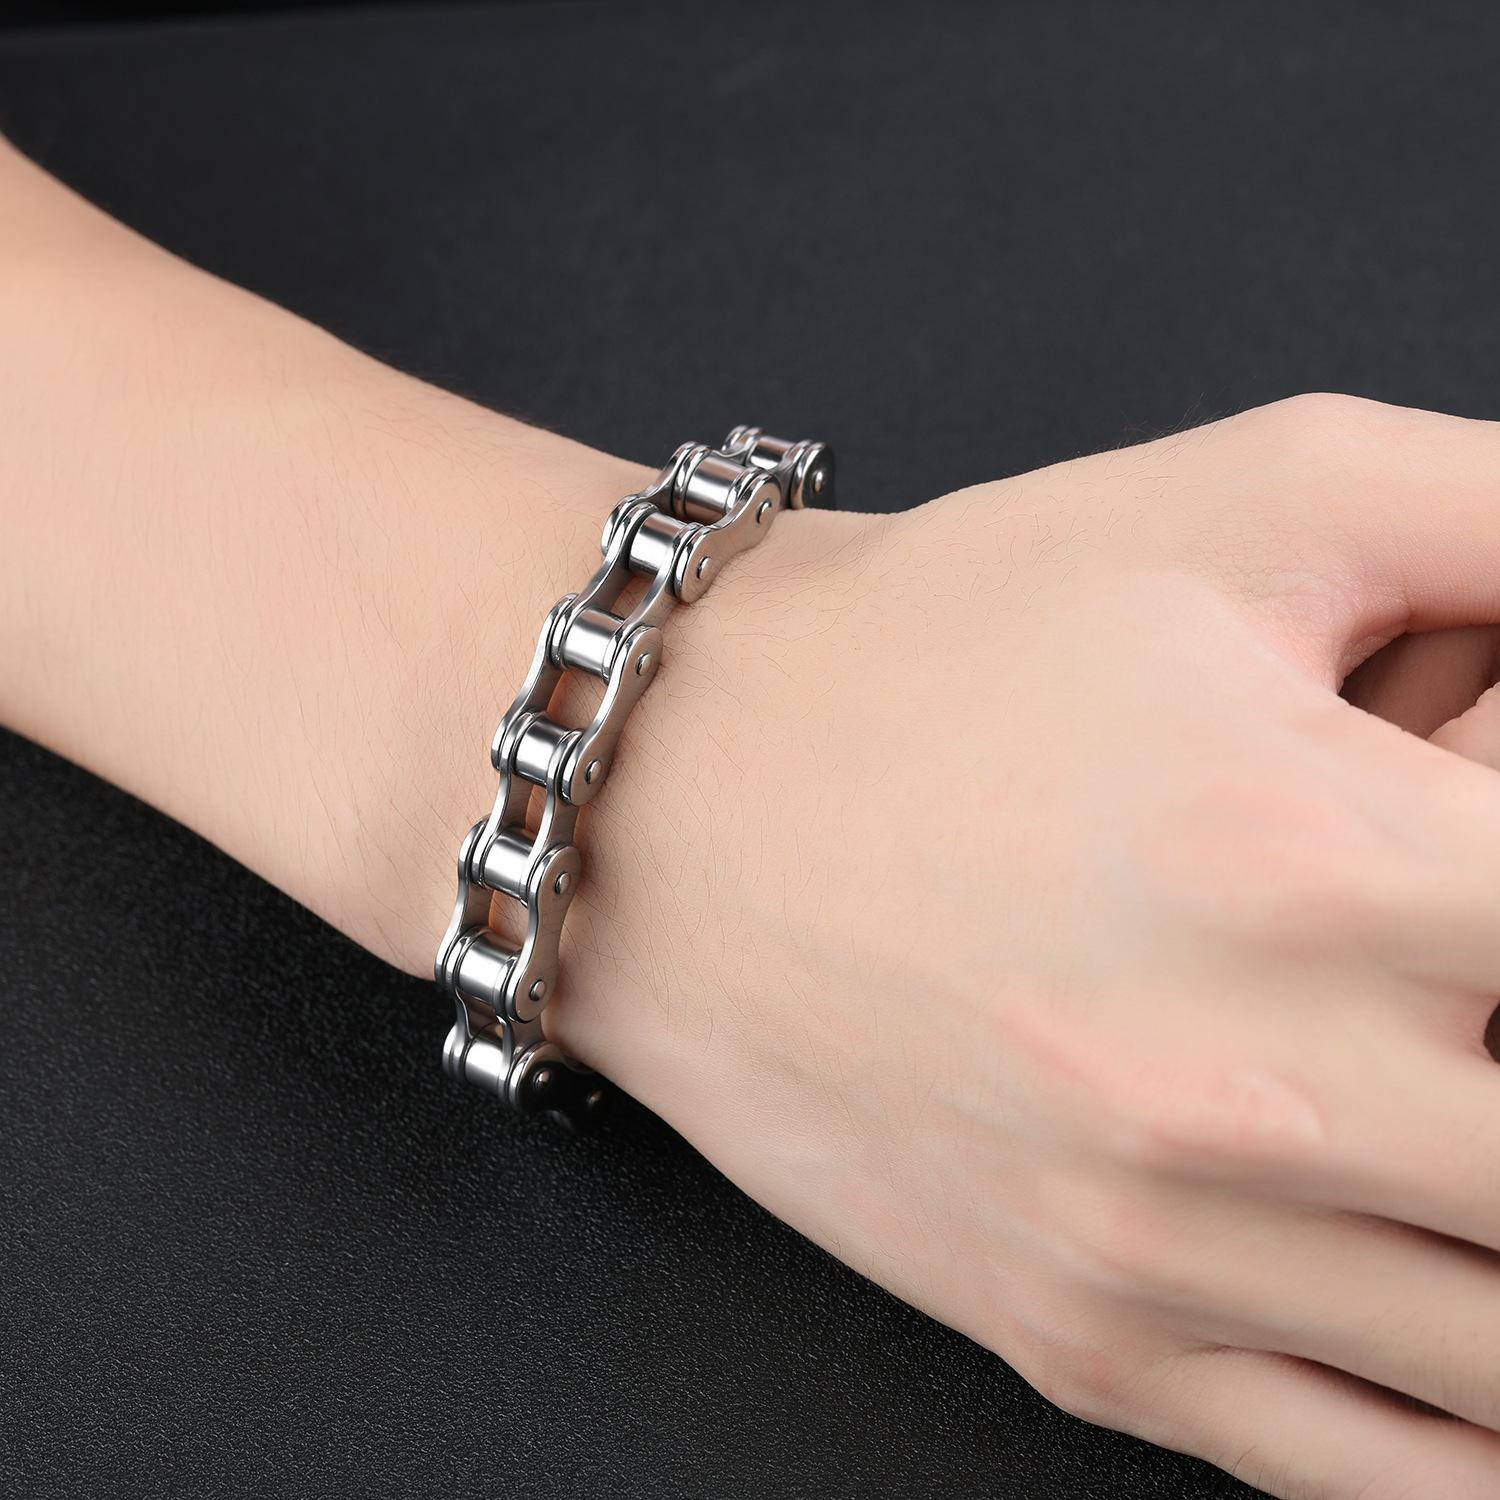 CC JEWELRY Men Silver Biker Bracelet 2018 Latest Design Stainless Steel High Quality Chain Bnagle Jewelry